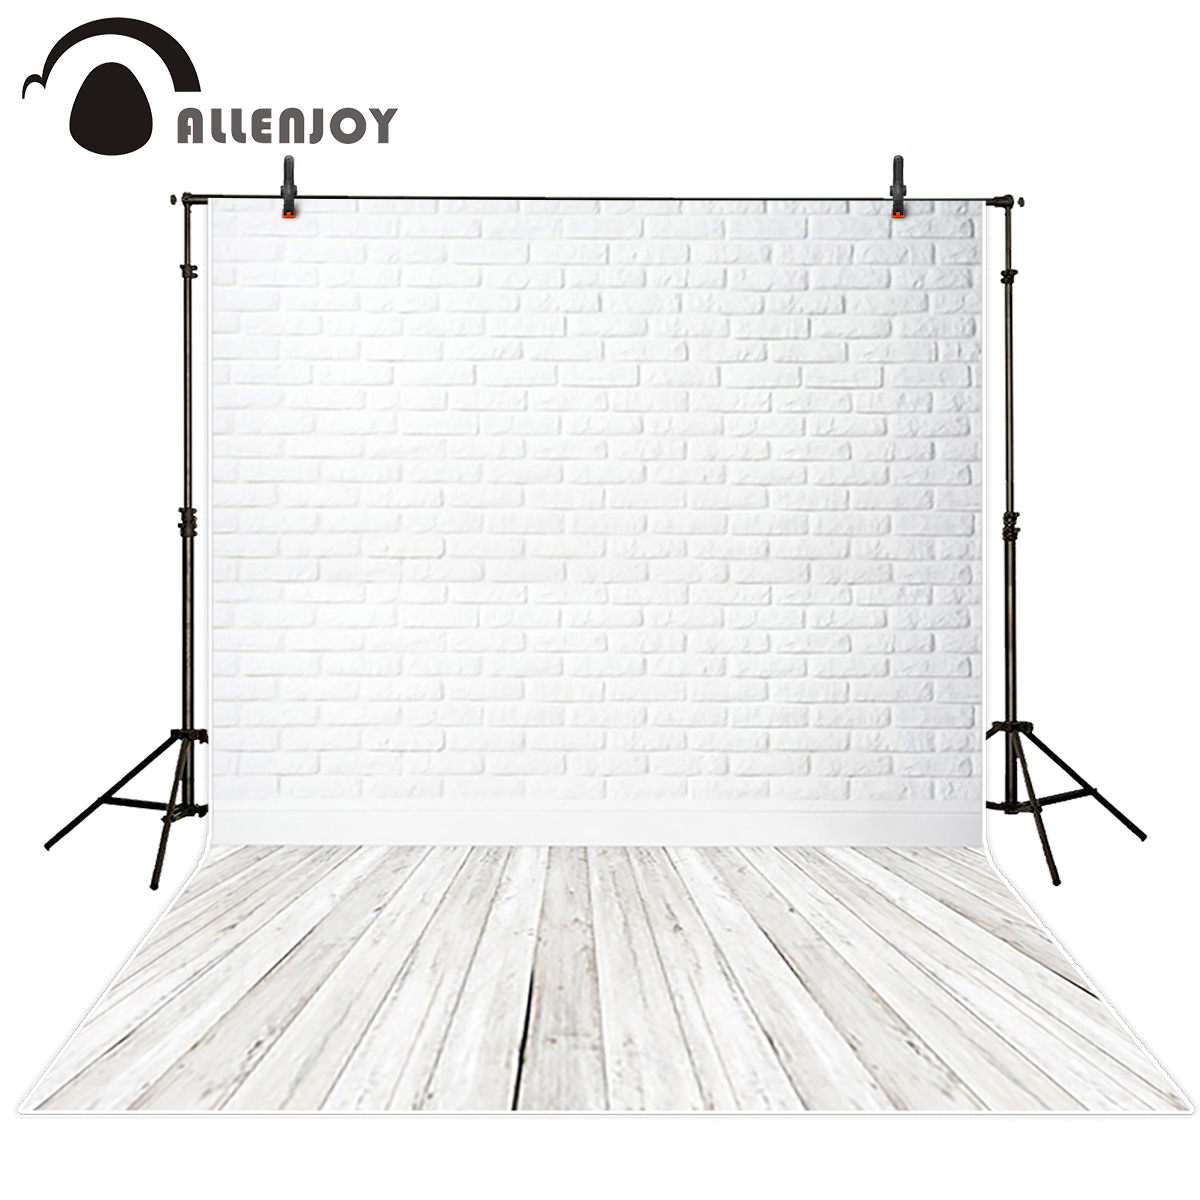 Allenjoy wall paper Photo background white painted closed brick wall closed wooden floor Background for photo